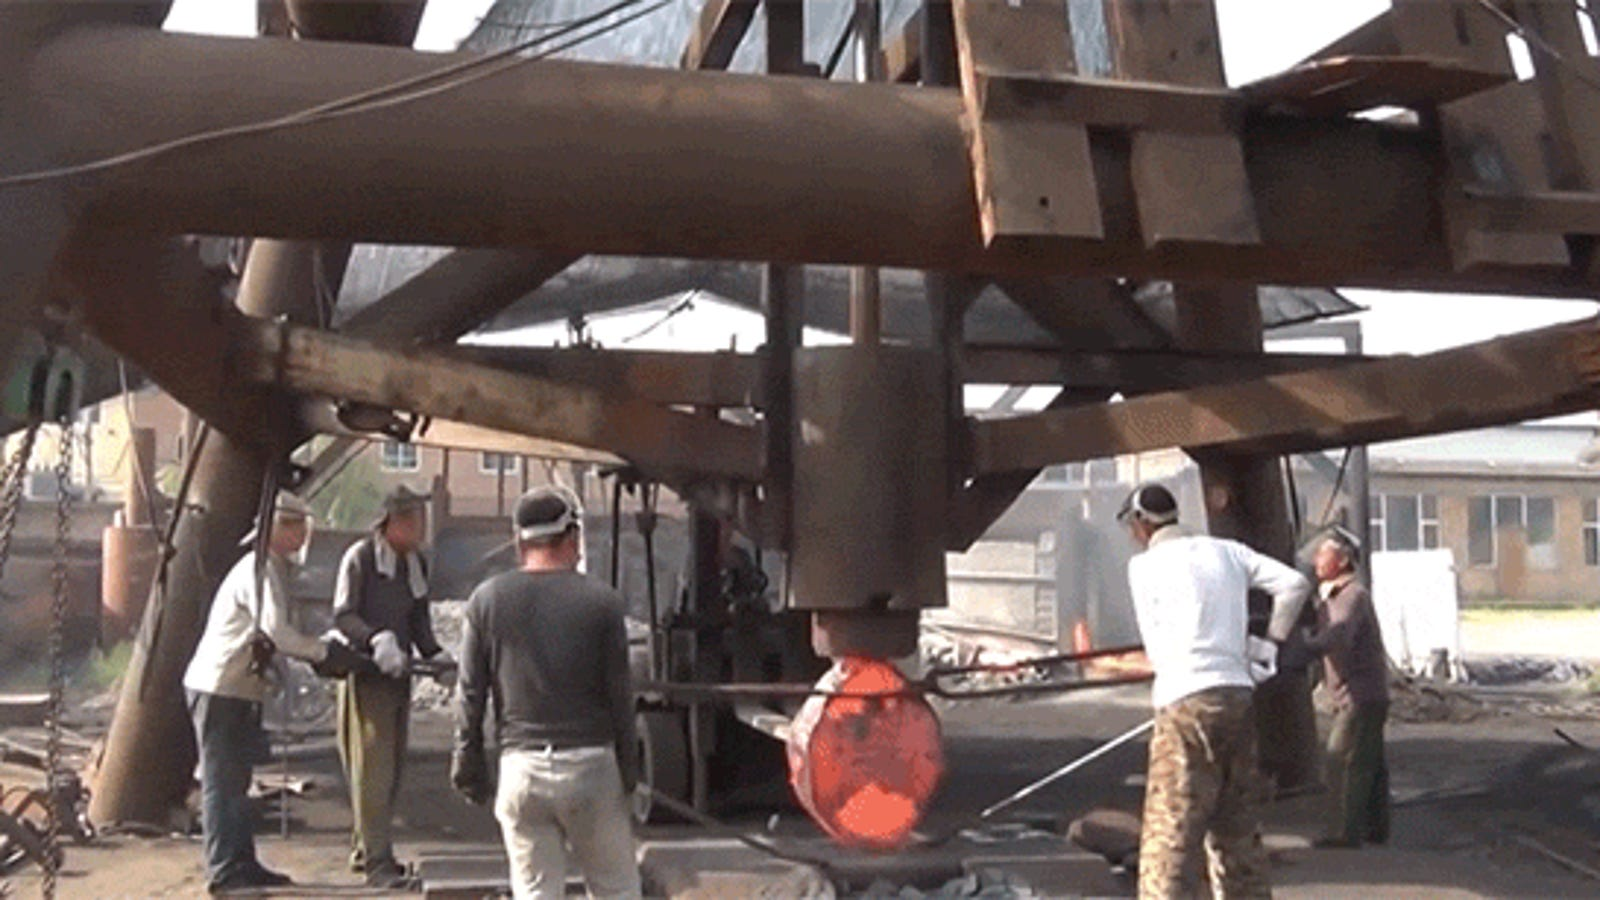 This Huge Forging Hammer Smashes Things Like a Real Life Thwomp from